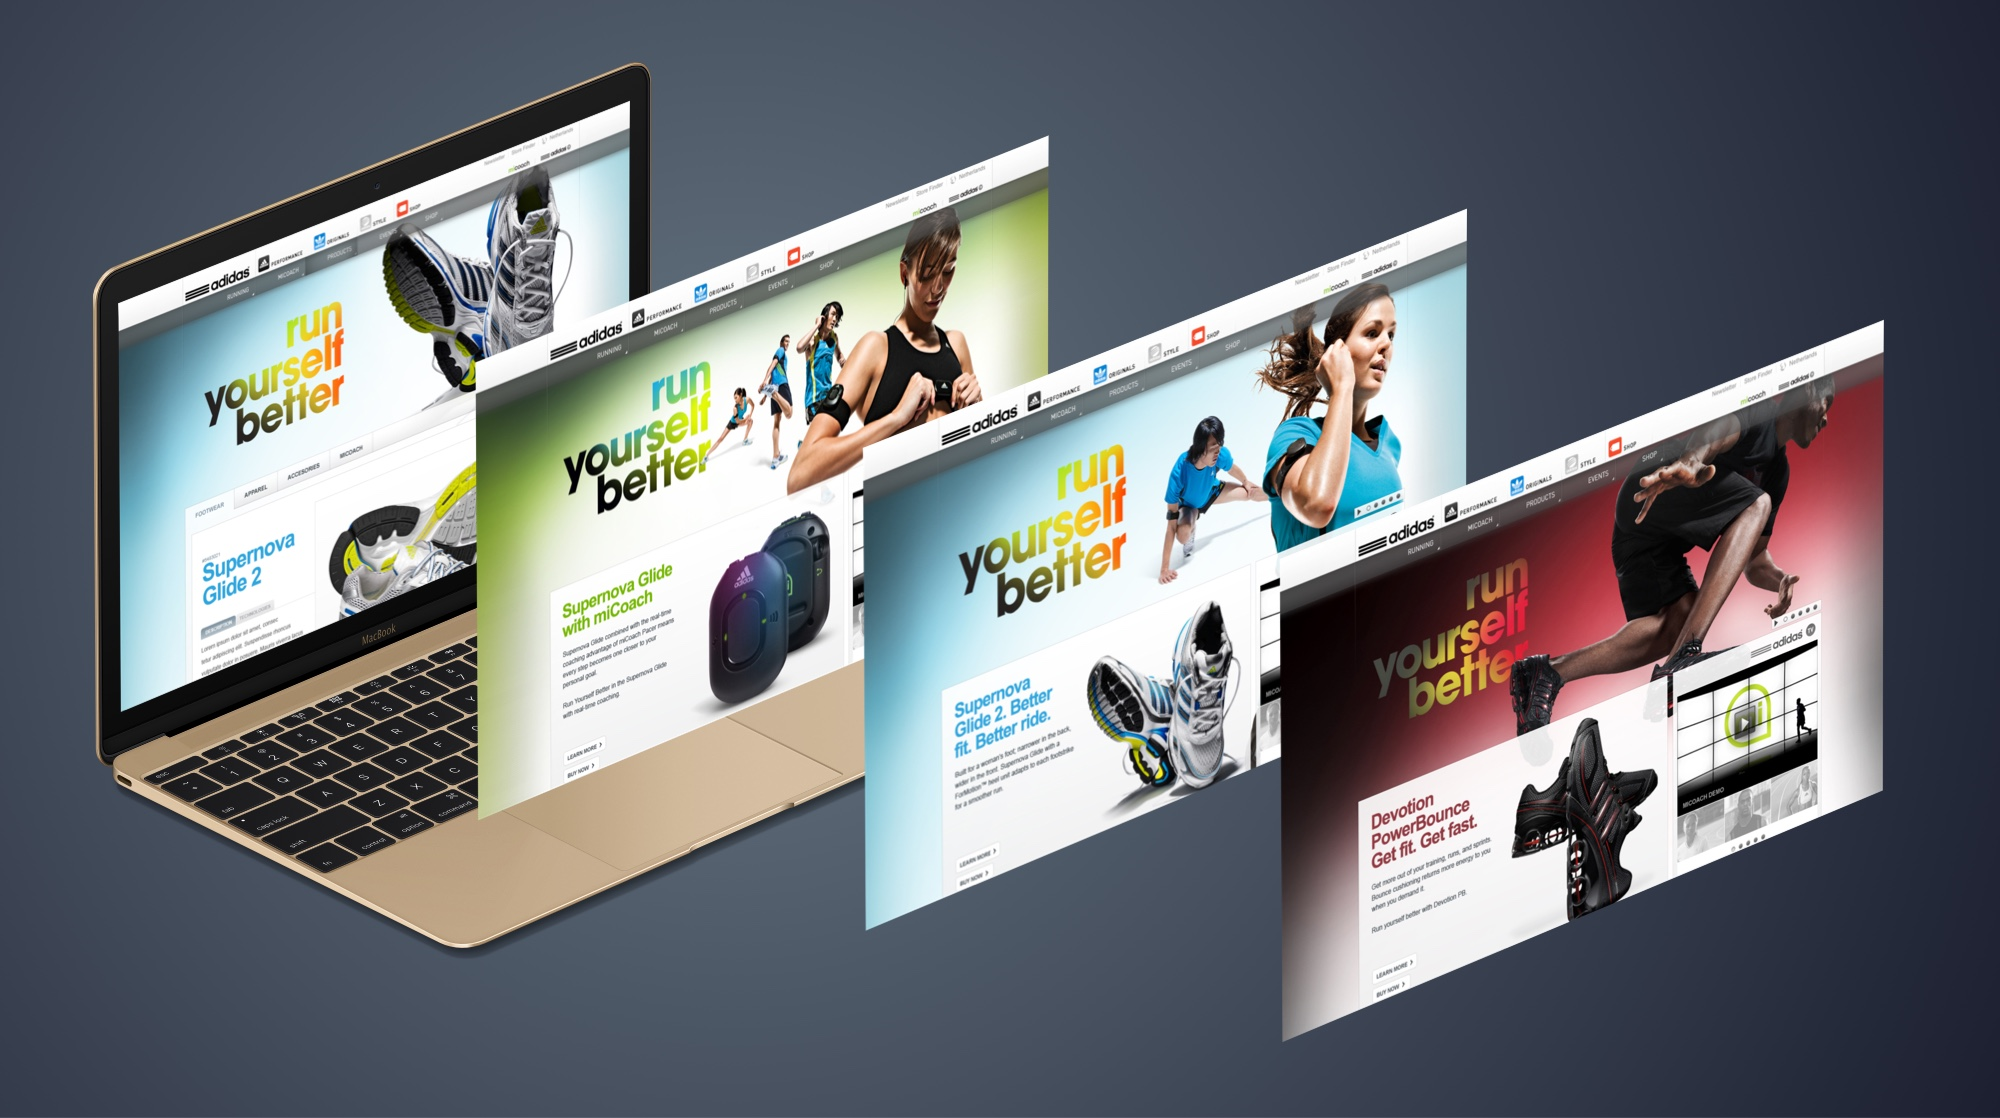 Redesign every sports vertical for adidas.com including: Running, Basketball, Football (Soccer), Women's Fitness, Stella McCartney.